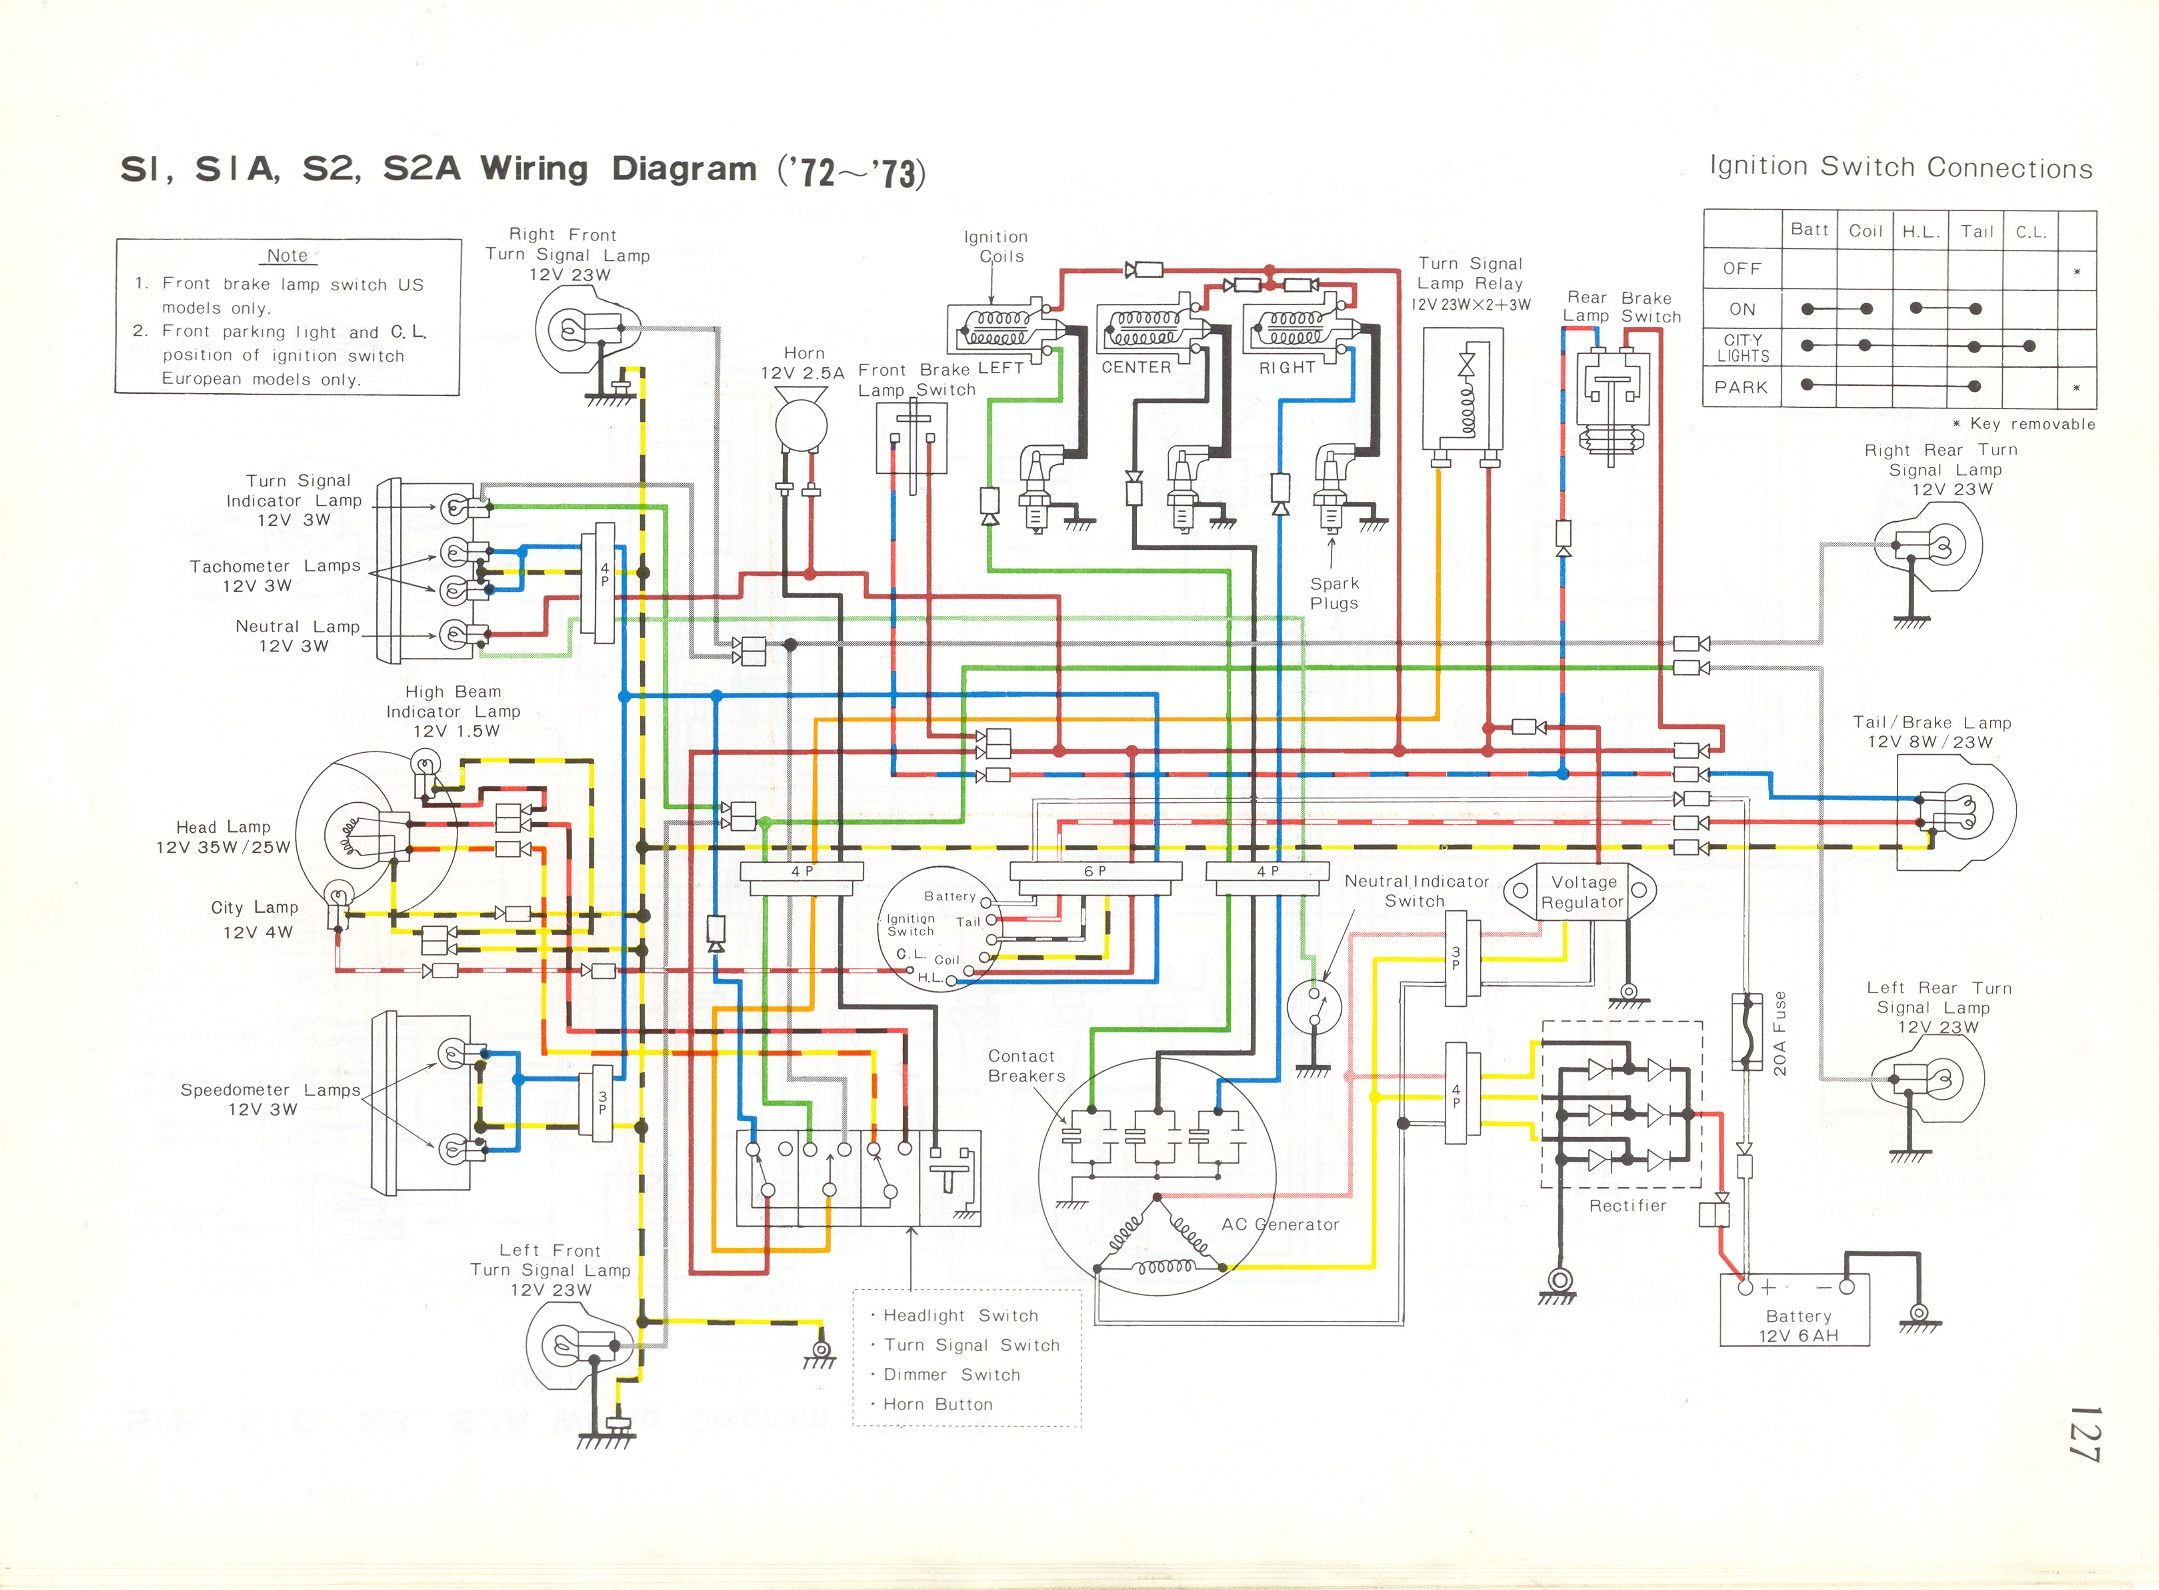 Kawasaki Gt750 Wiring Diagram Libraries 82 Gpz750 Librarywiring Diagrams S1 A S2